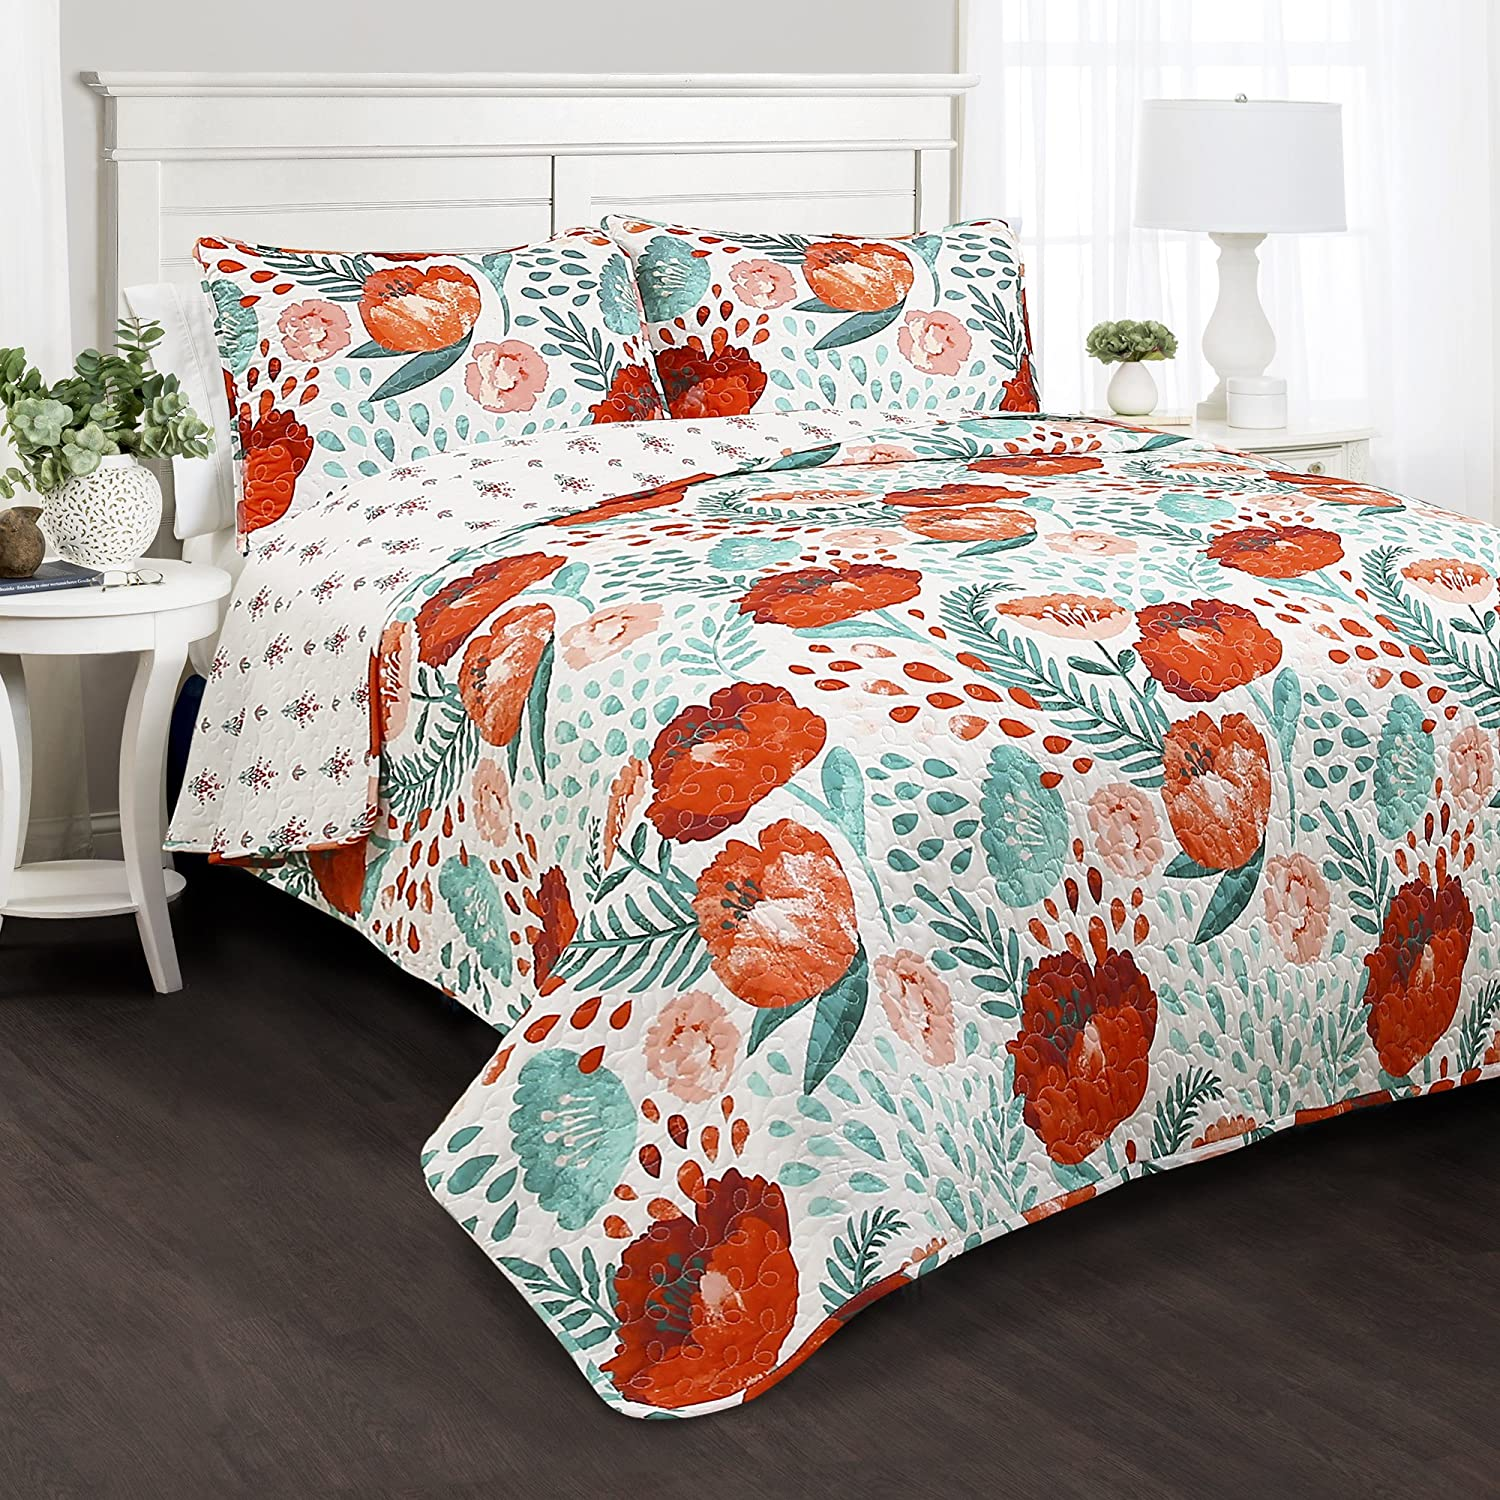 Lush Decor Poppy Garden Quilt Set, Full/Queen, Multicolor